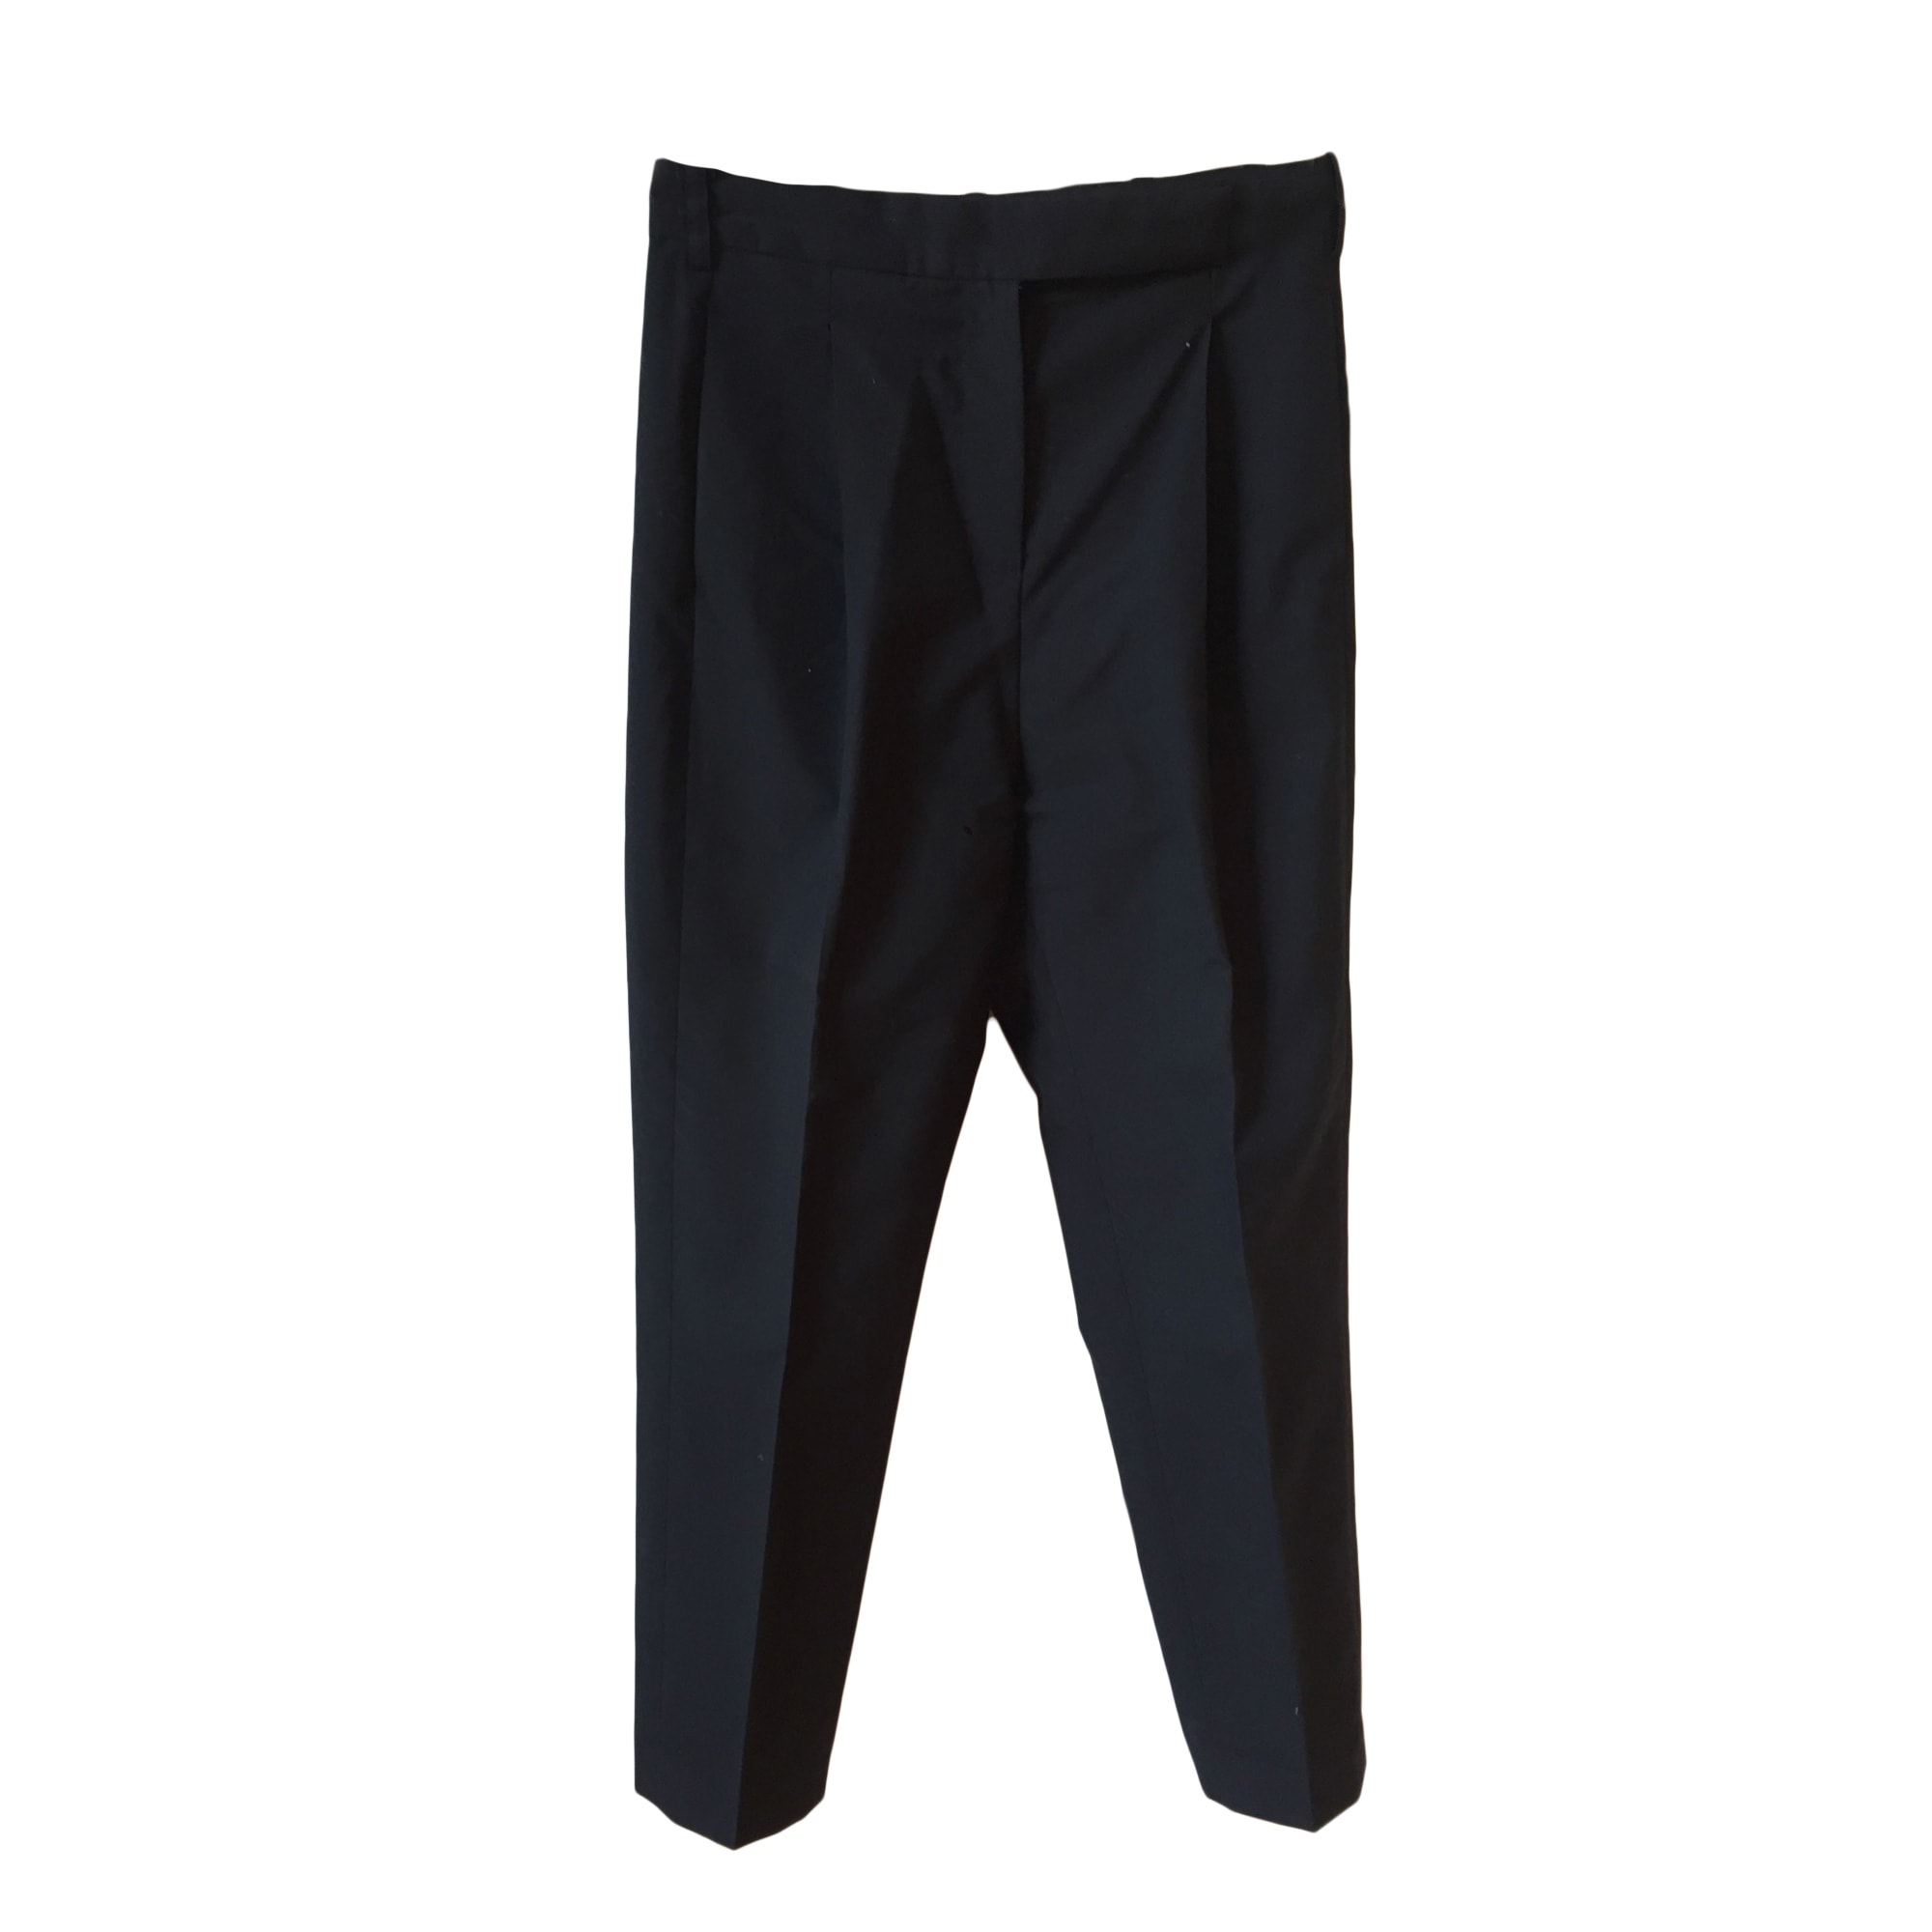 Straight Leg Pants GOLDEN GOOSE Black